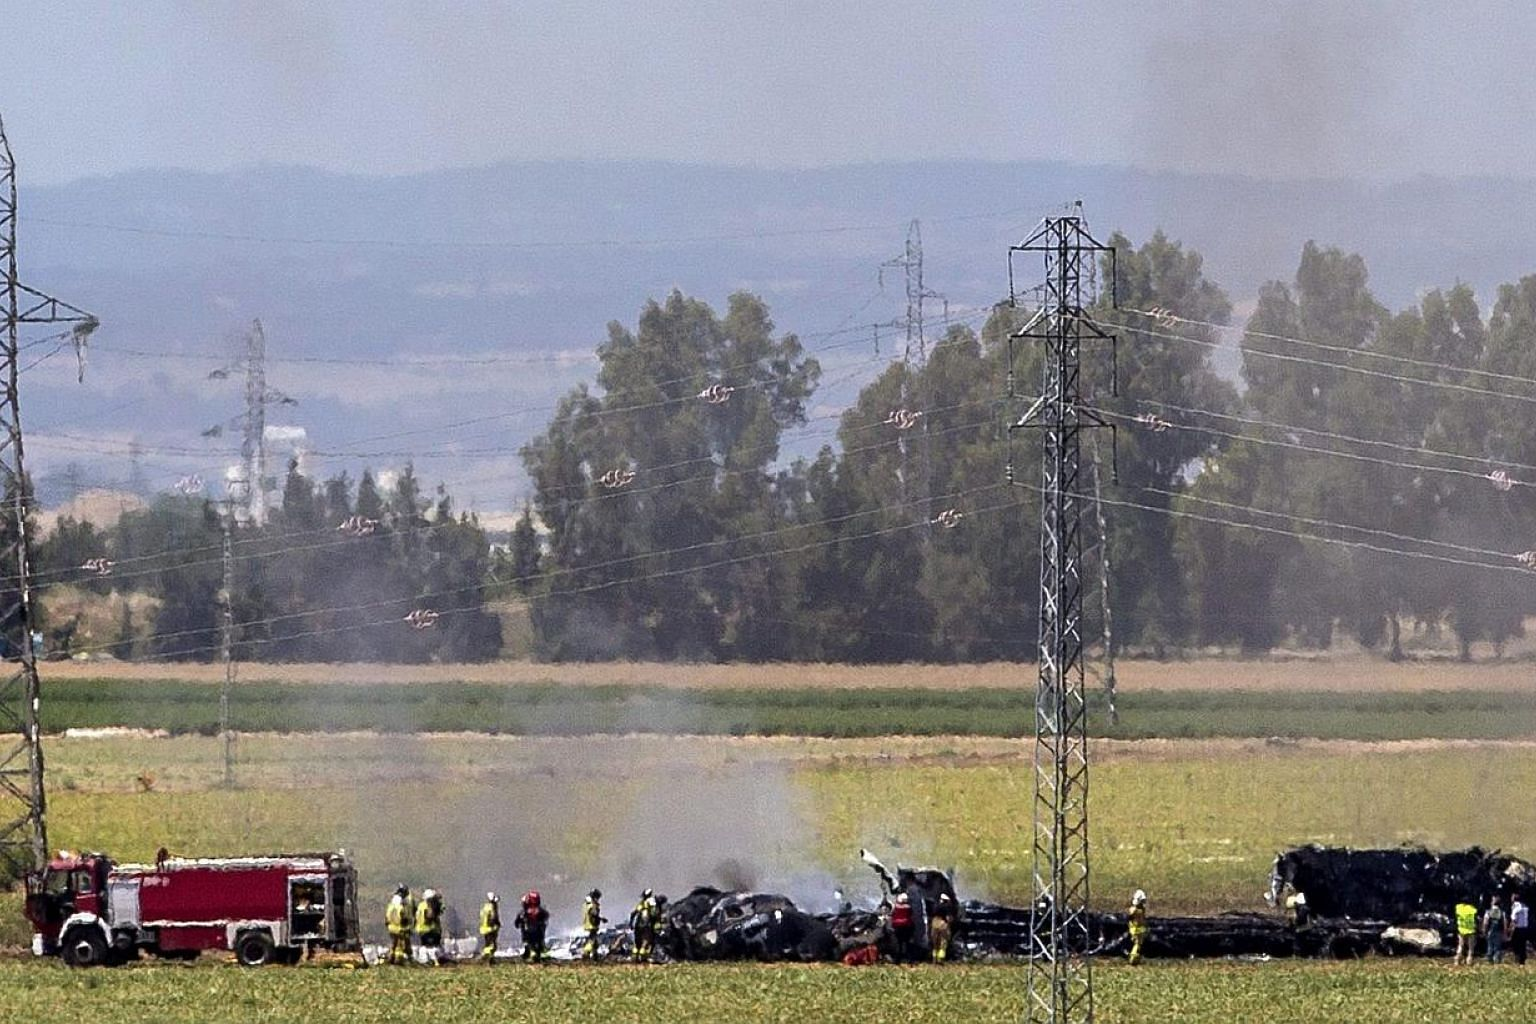 Smokes rises from the wreckage of a plane Airbus A400 which crashed in the San Pablo airport in Seville, sourthern Spain, May 9, 2015. -- PHOTO: EPA